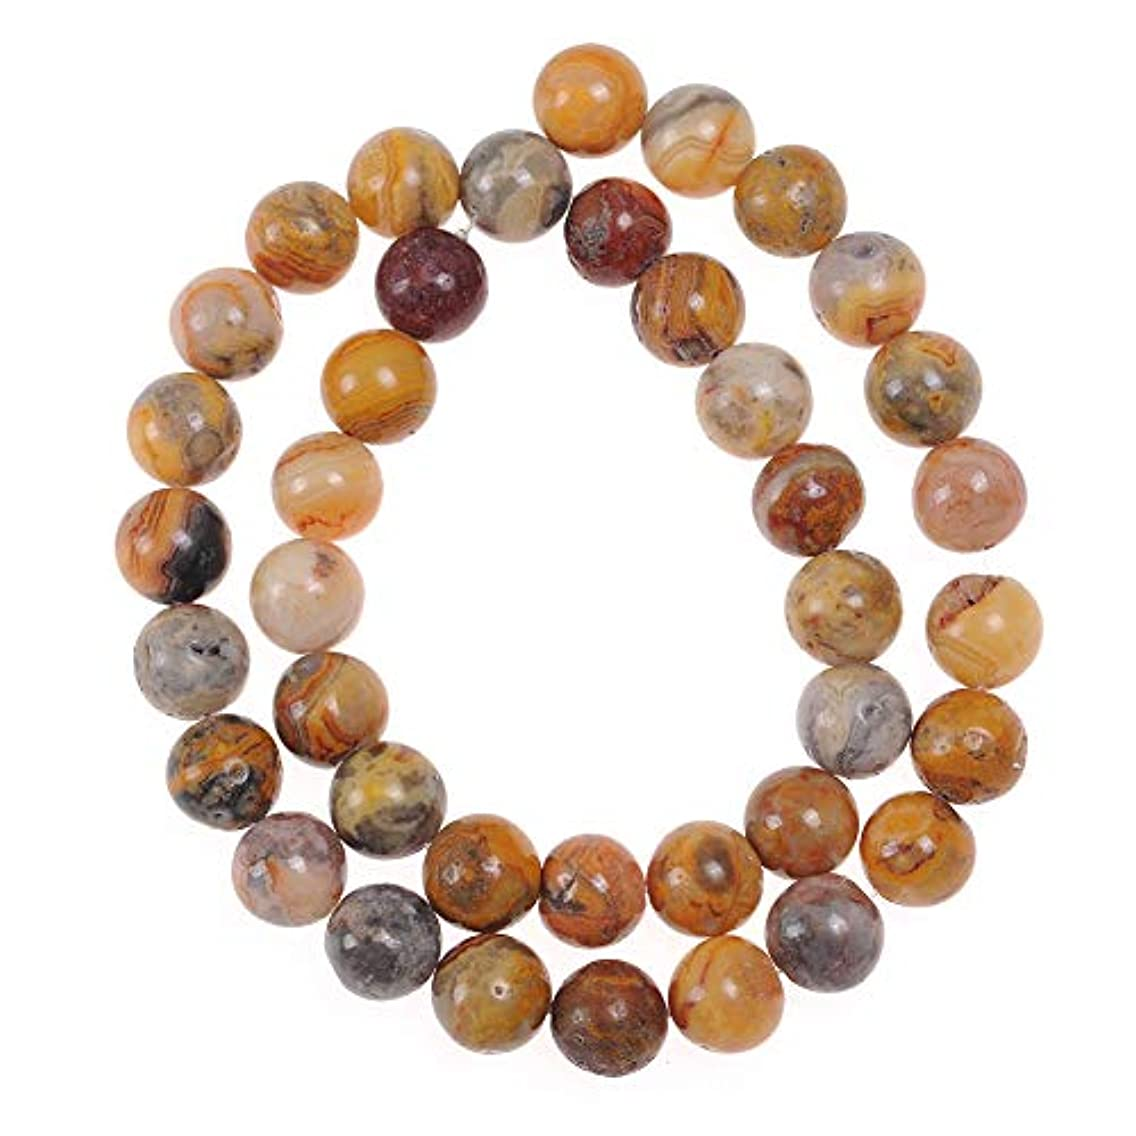 45pcs 8mm Crazy Lace Agate Beads for Jewelry Making Adults Bracelets Necklace Natural Stone Beads for Handmade Jewellry